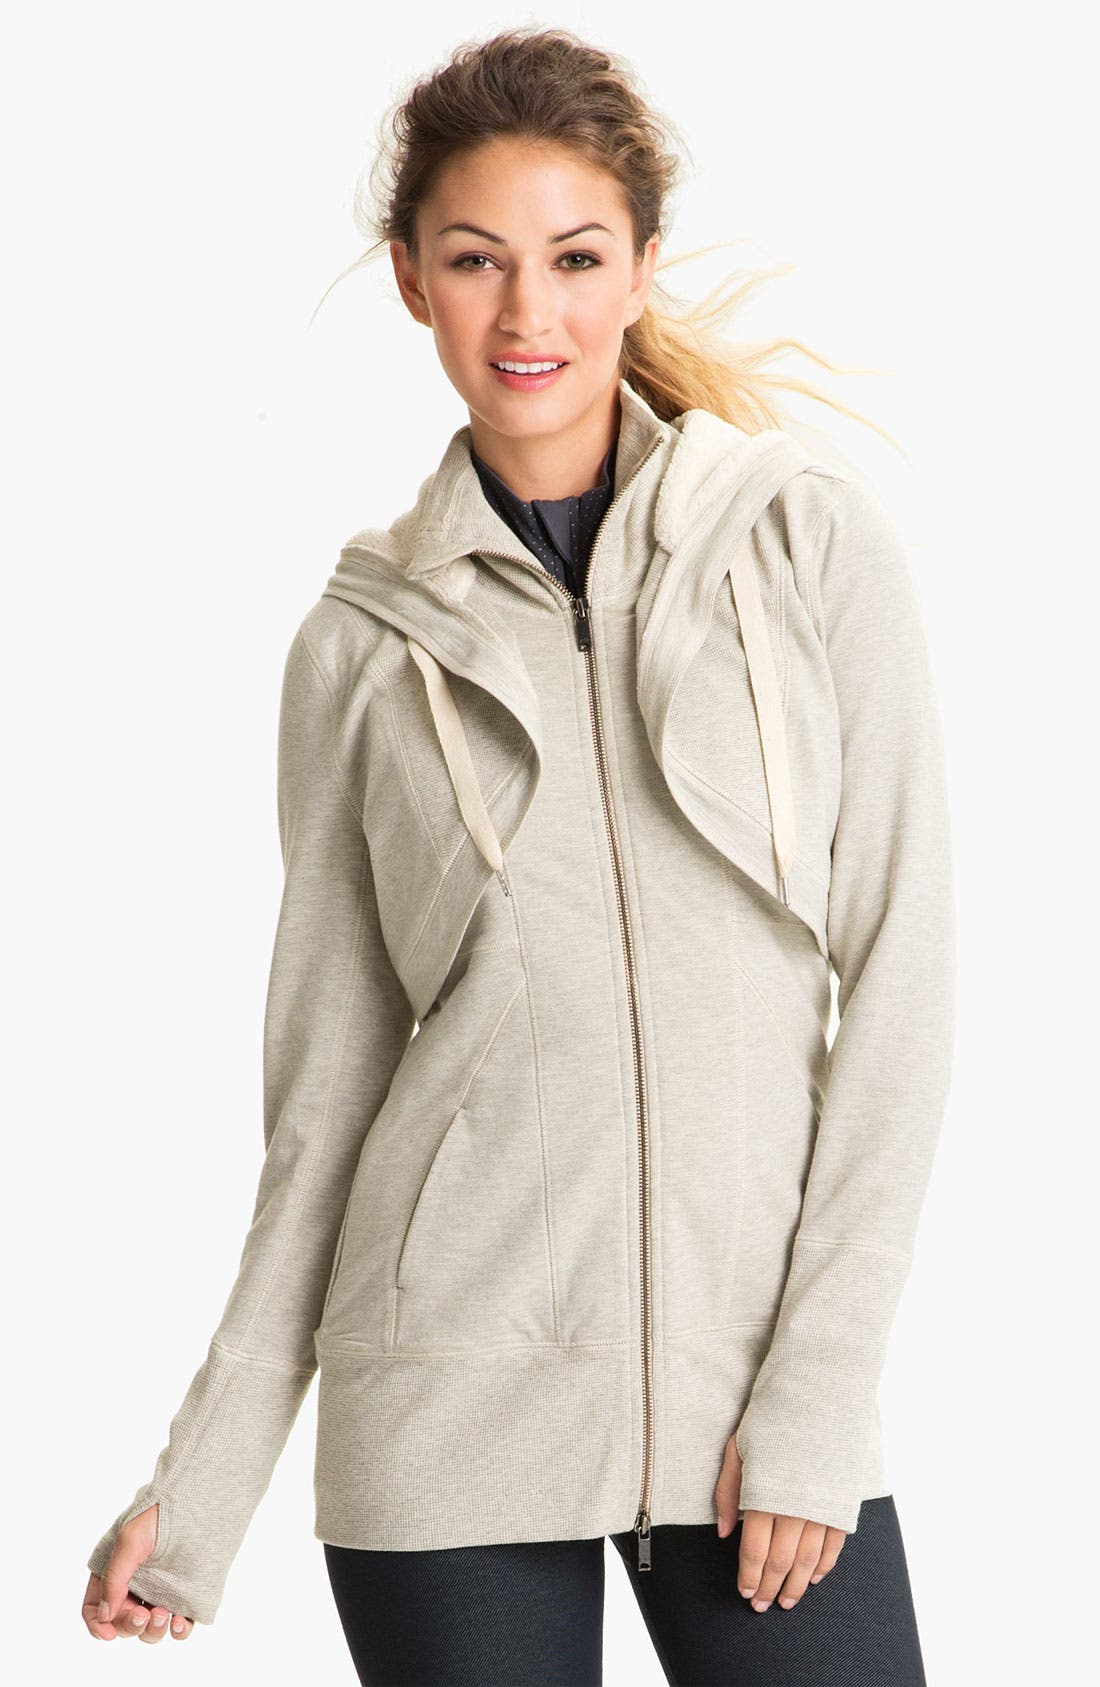 Alternate Image 1 Selected - Zella 'Chalet' 3-in-1 Jacket